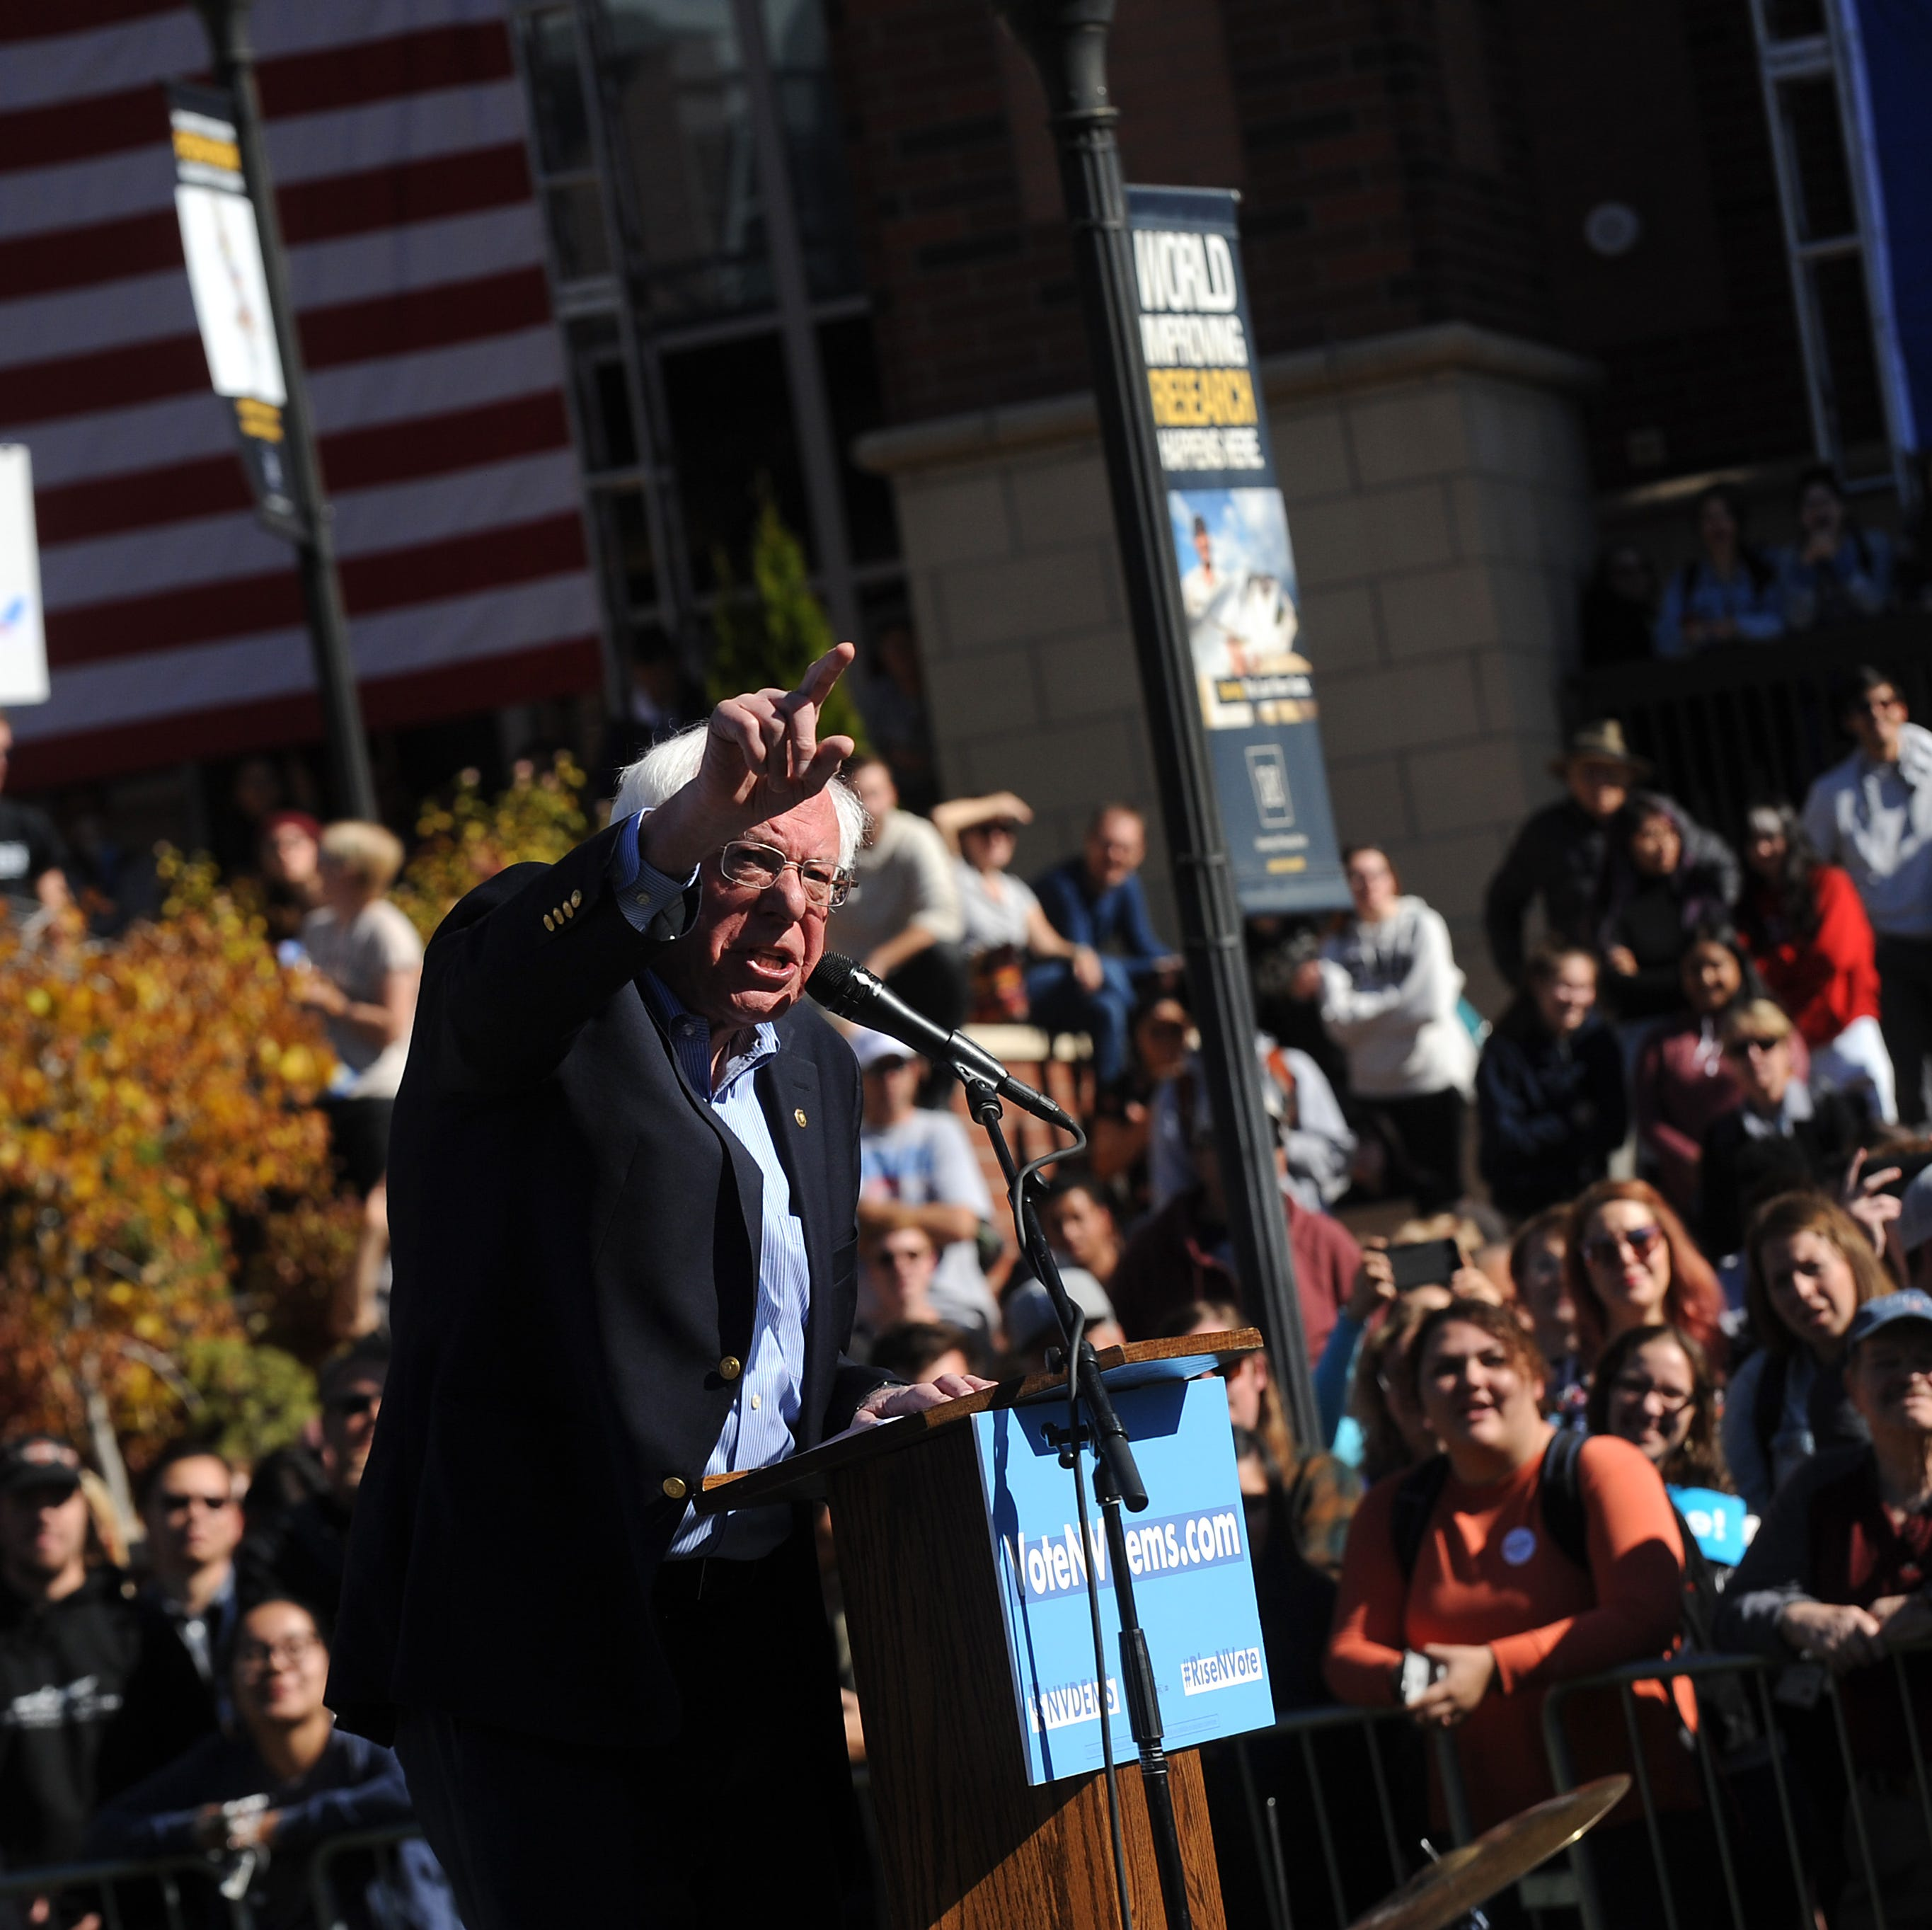 Bernie Sanders to rally in Reno during first 2020 campaign visit to Northern Nevada